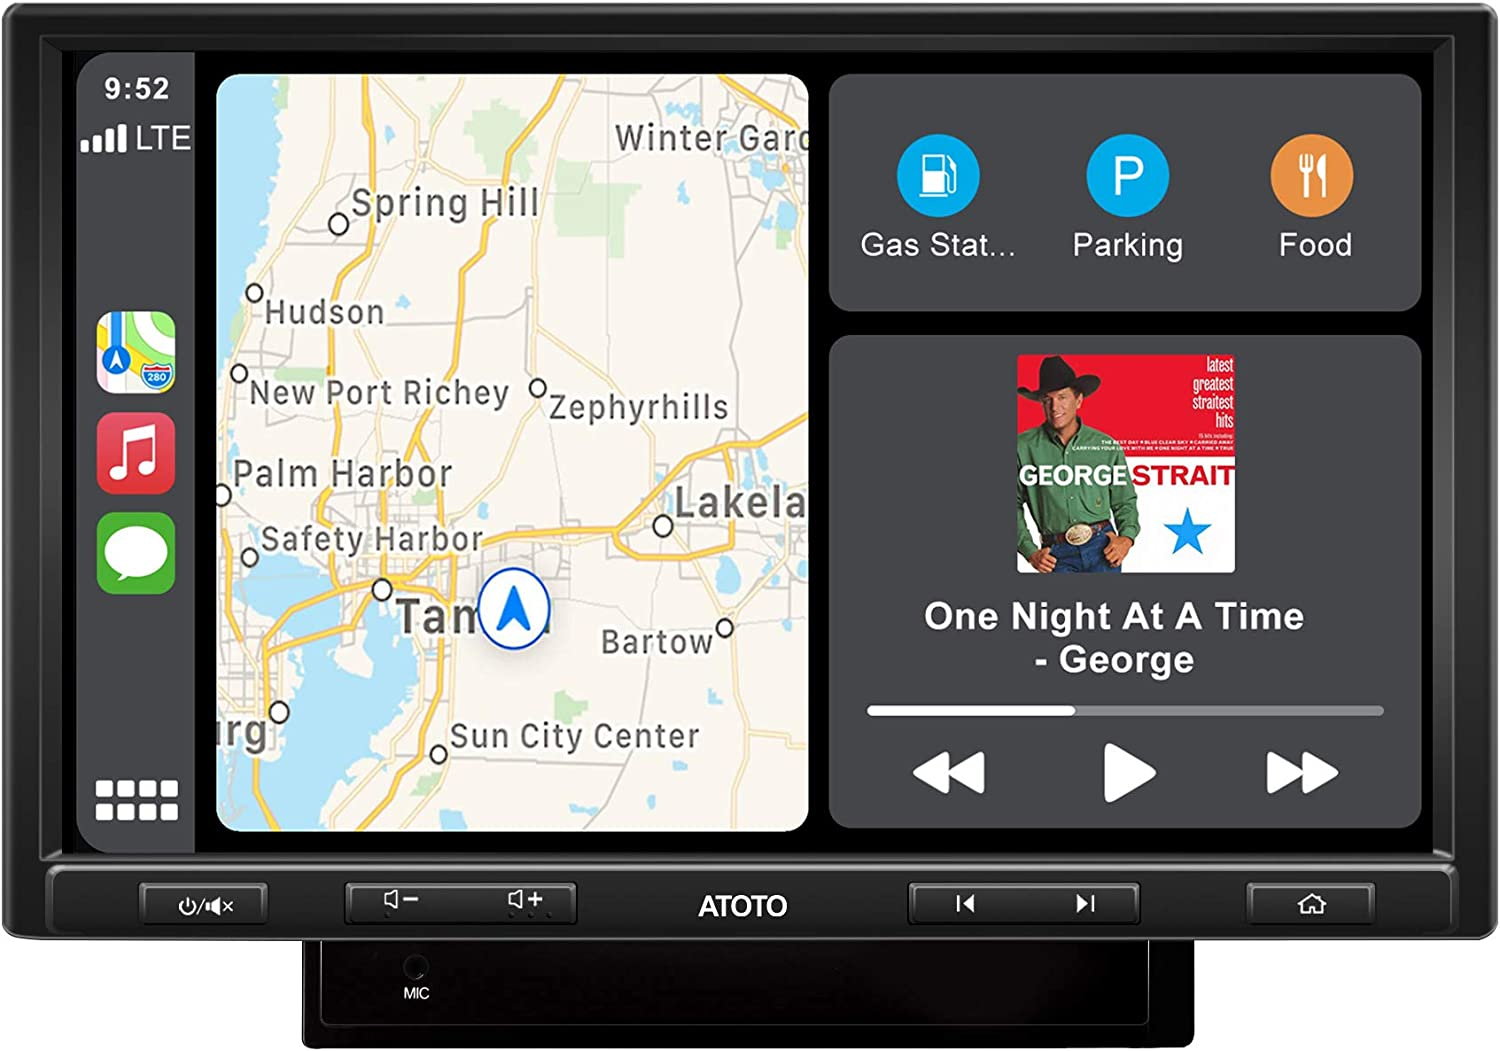 ATOTO F7 PE in-Dash Video Receiver - F7G210PE CarPlay&Android Auto Receiver with Bluetooth, Phone Charge,Phone Mirroring (Auto Link),USB/SD Playback (Read up to 2TB Storage) (10in,DAH10D Style)